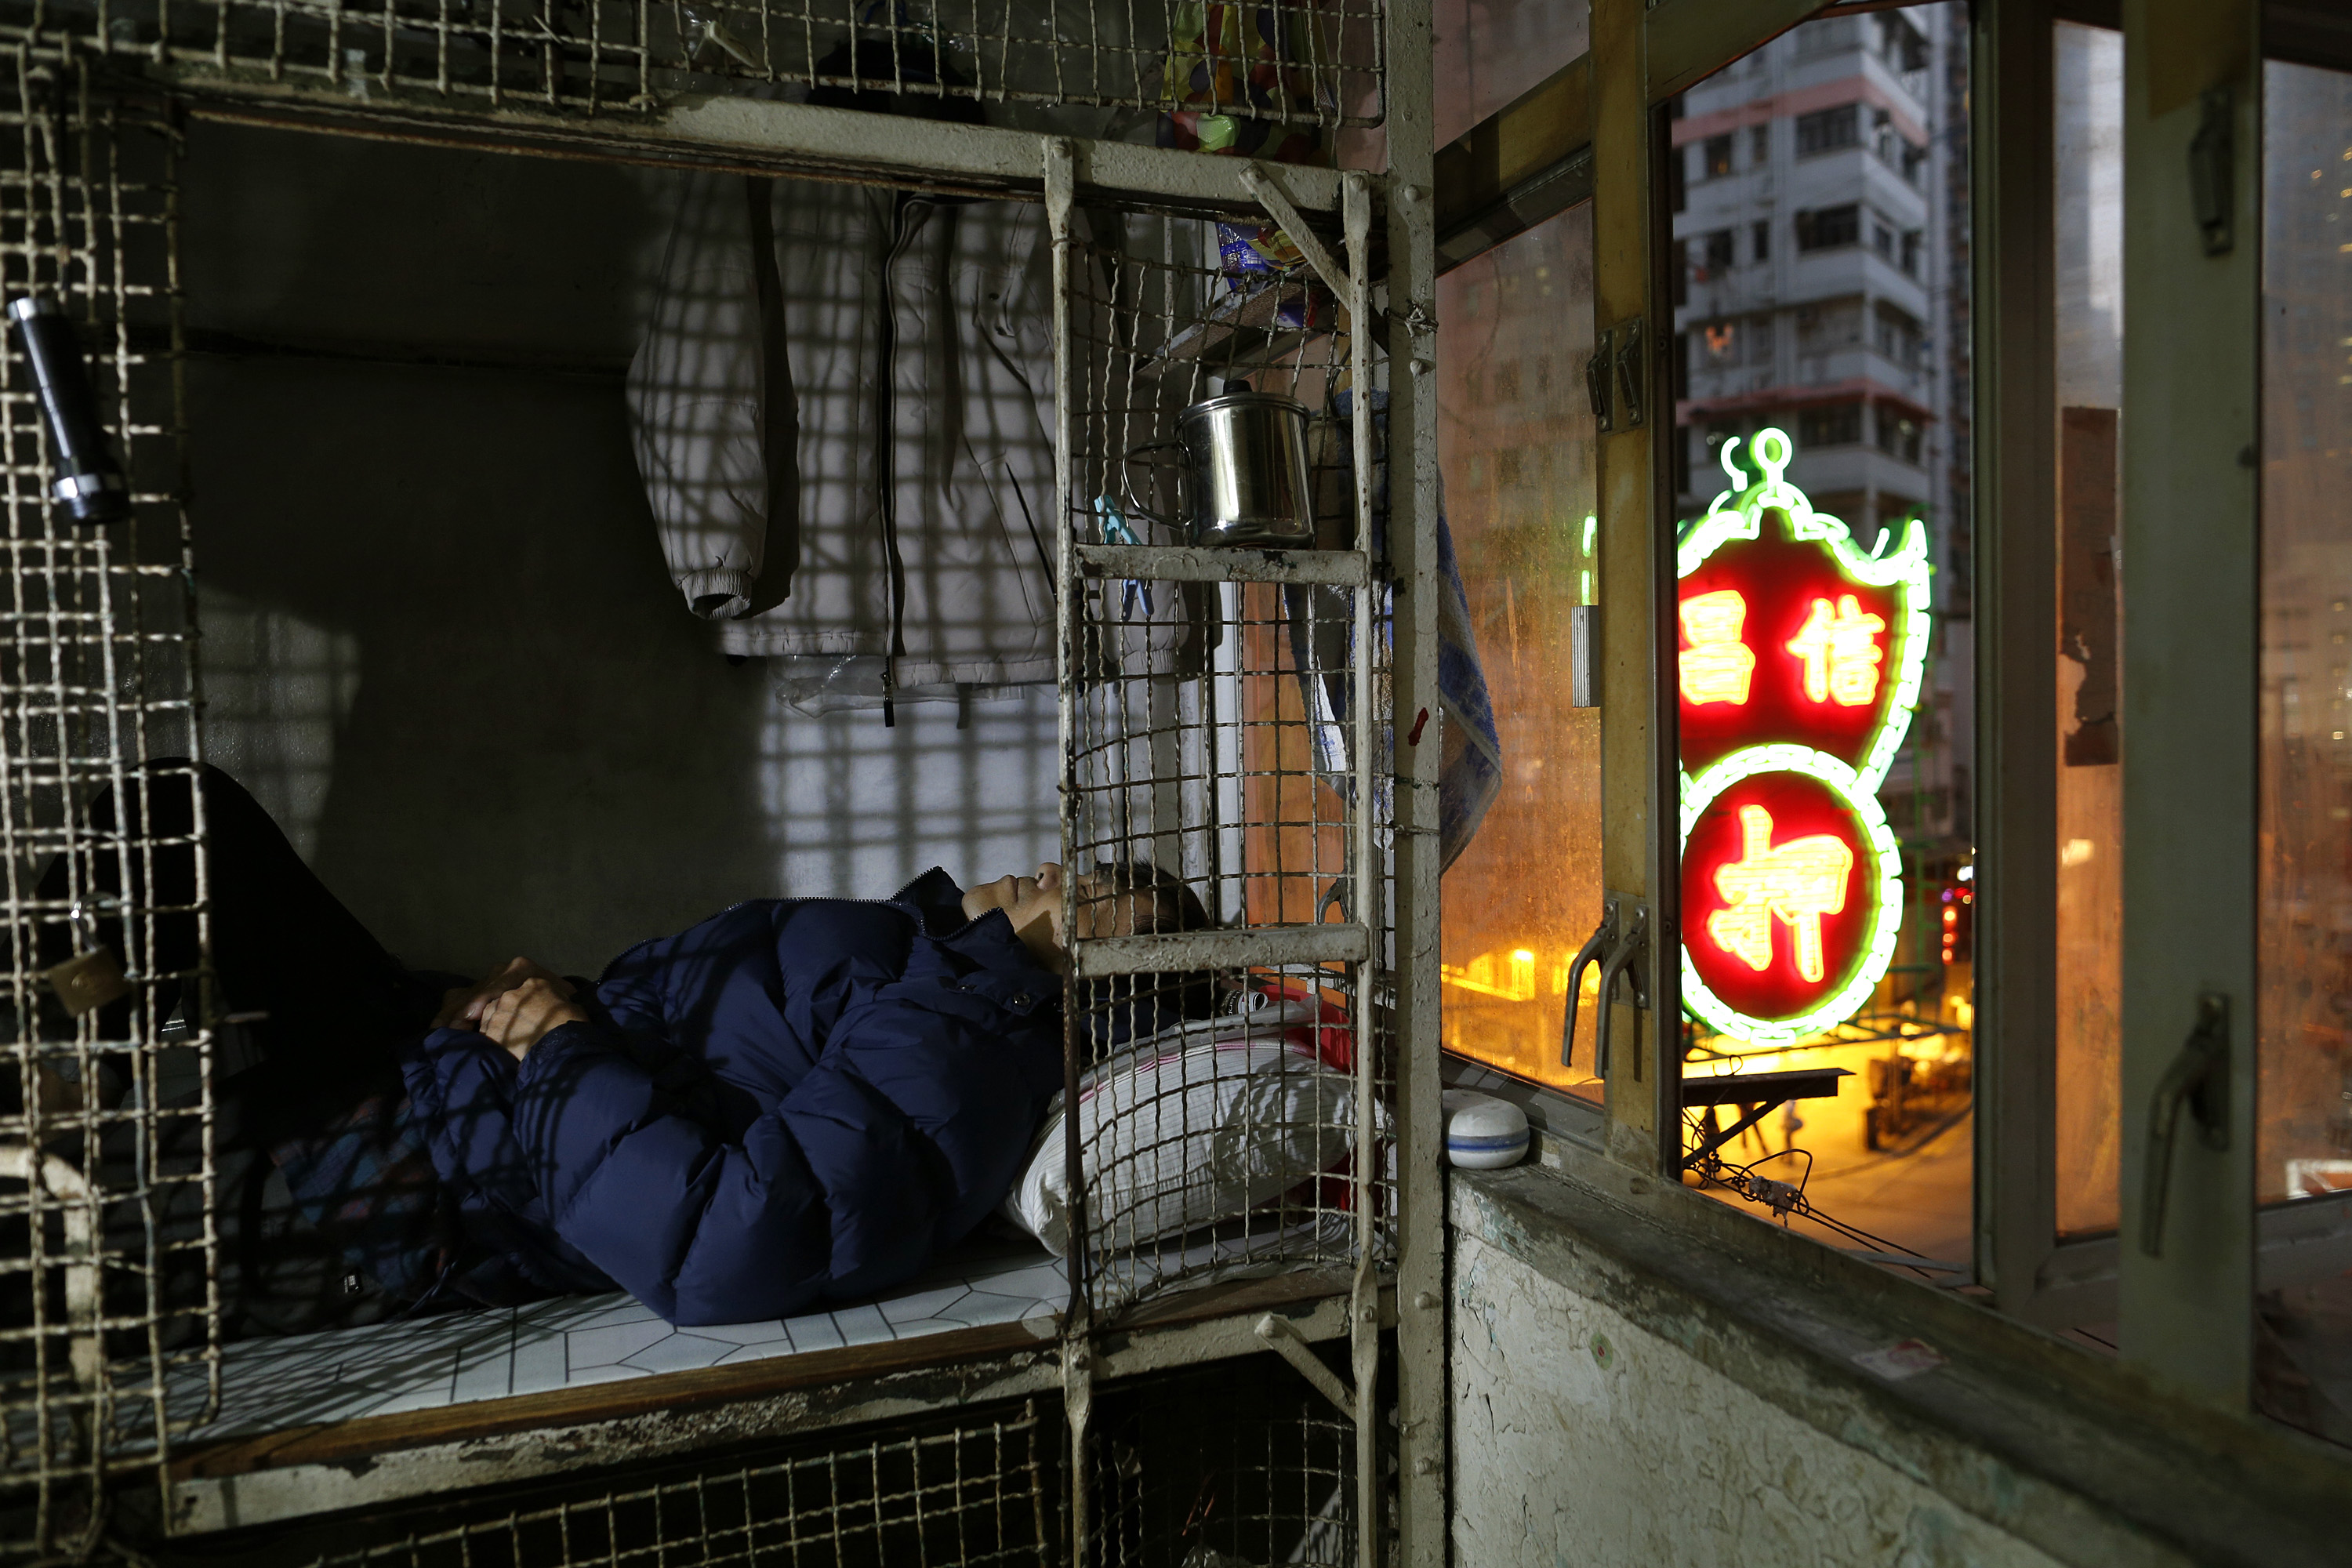 In this Jan. 25, 2013, photo, 62-year-old Cheng Man-wai lays in his cage, measuring 16 sq. ft., which he calls home, in Hong Kong